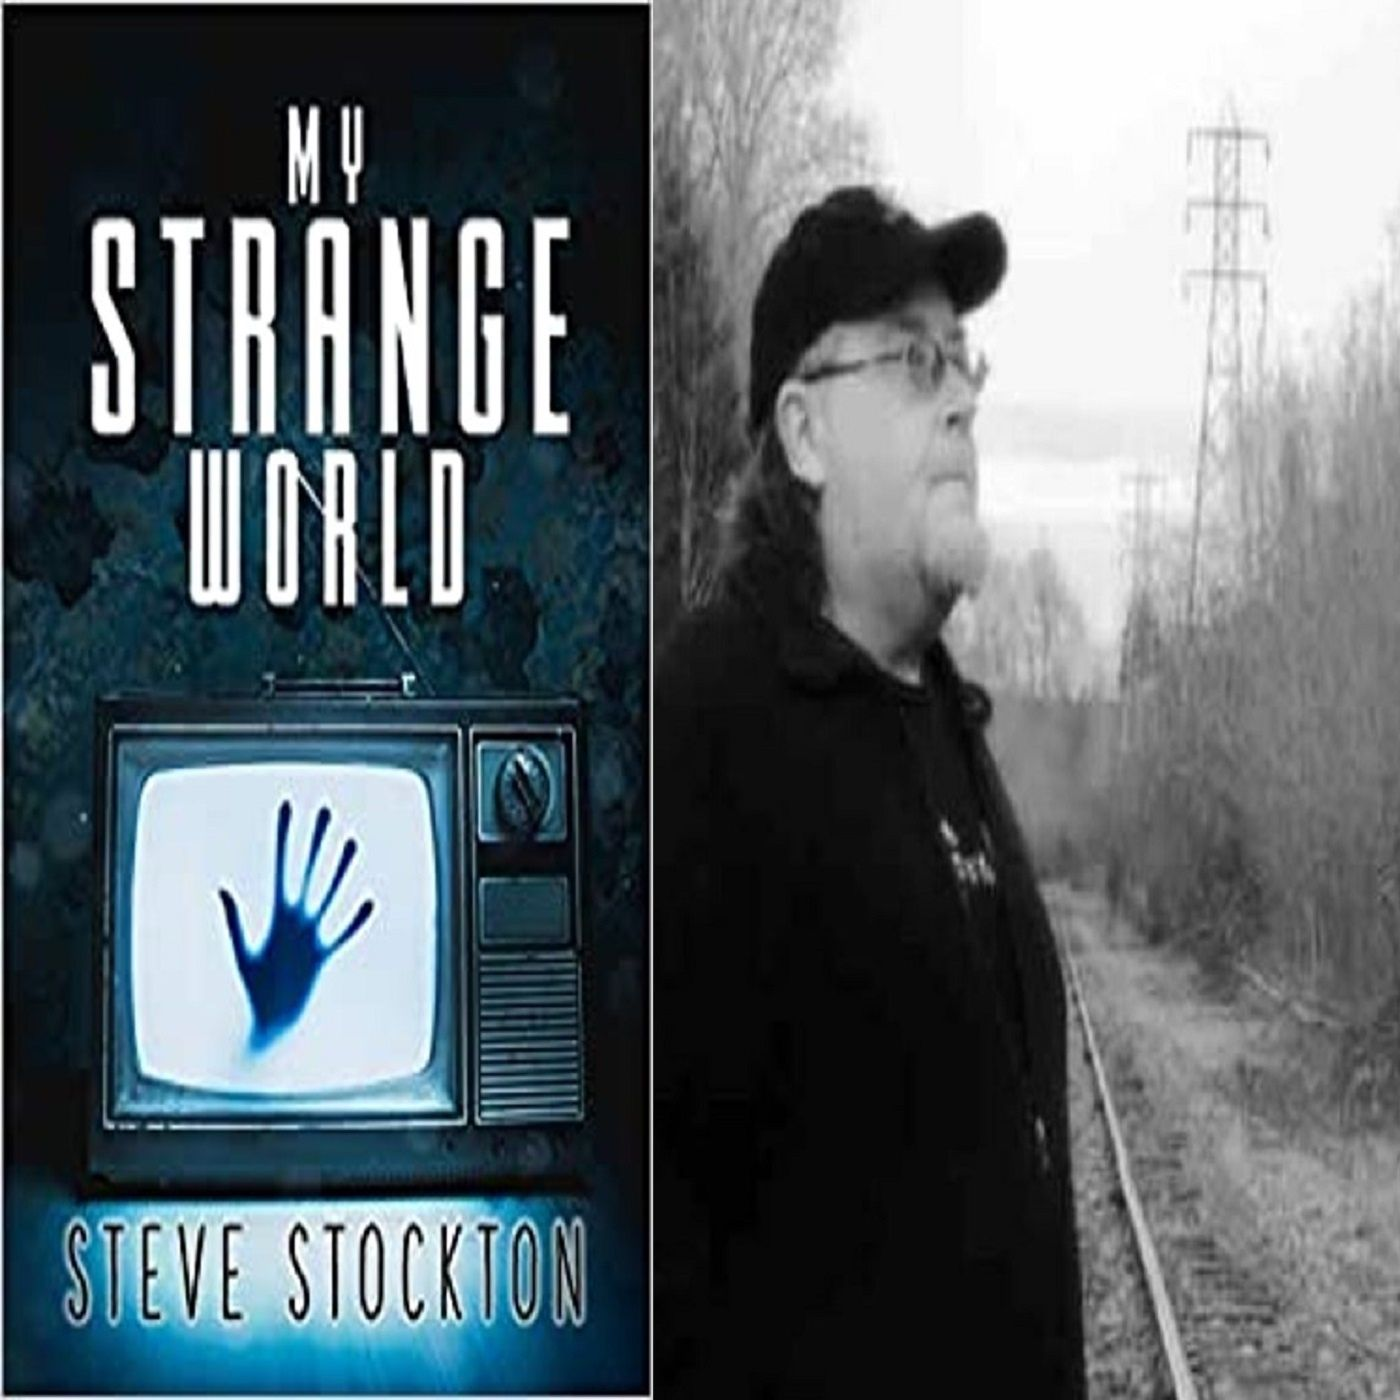 Strange Things & Mysterious Disappearances in the Woods with Steve Stockton